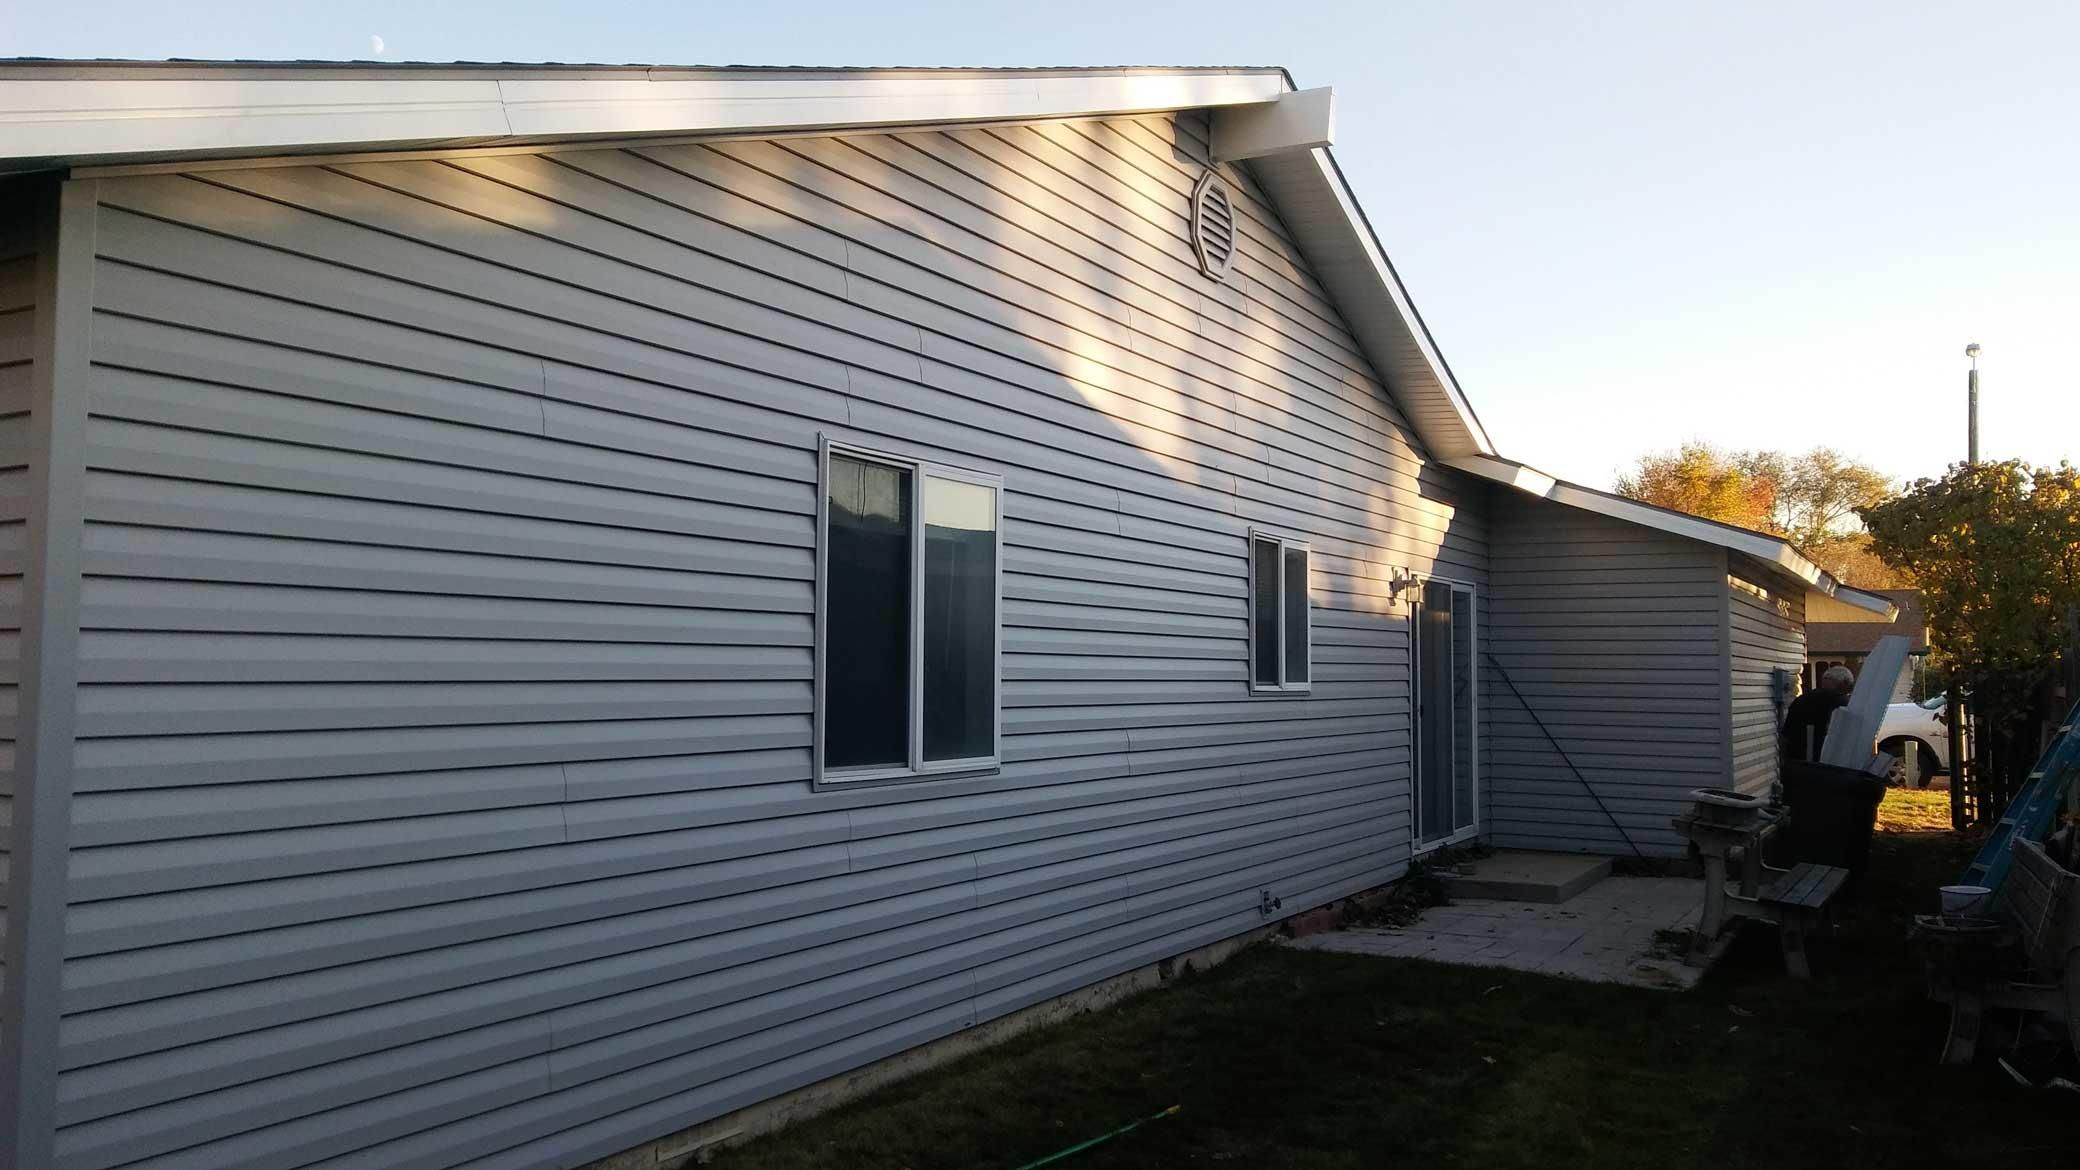 A Amp S Siding And Gutters Nampa Idaho Id Localdatabase Com